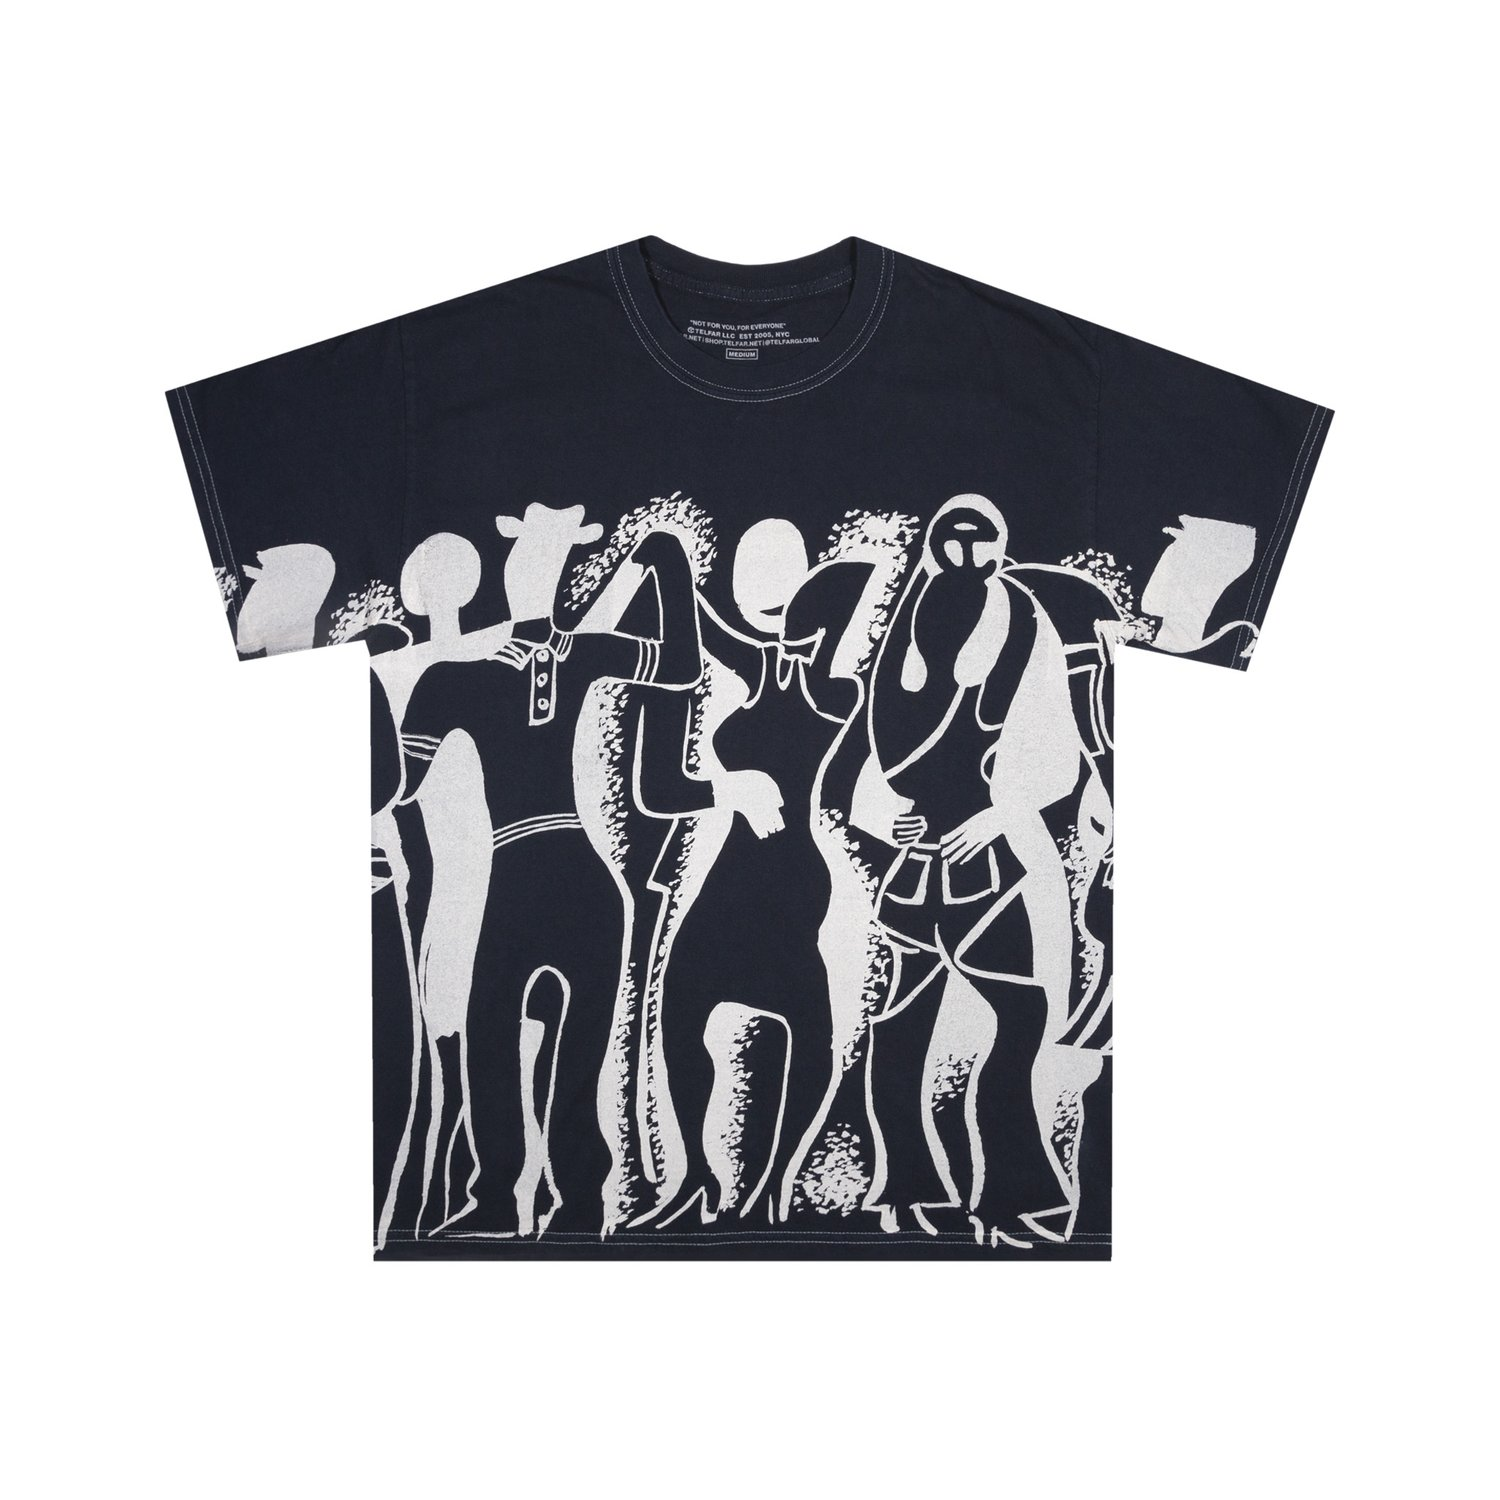 T-shirt from Telfar